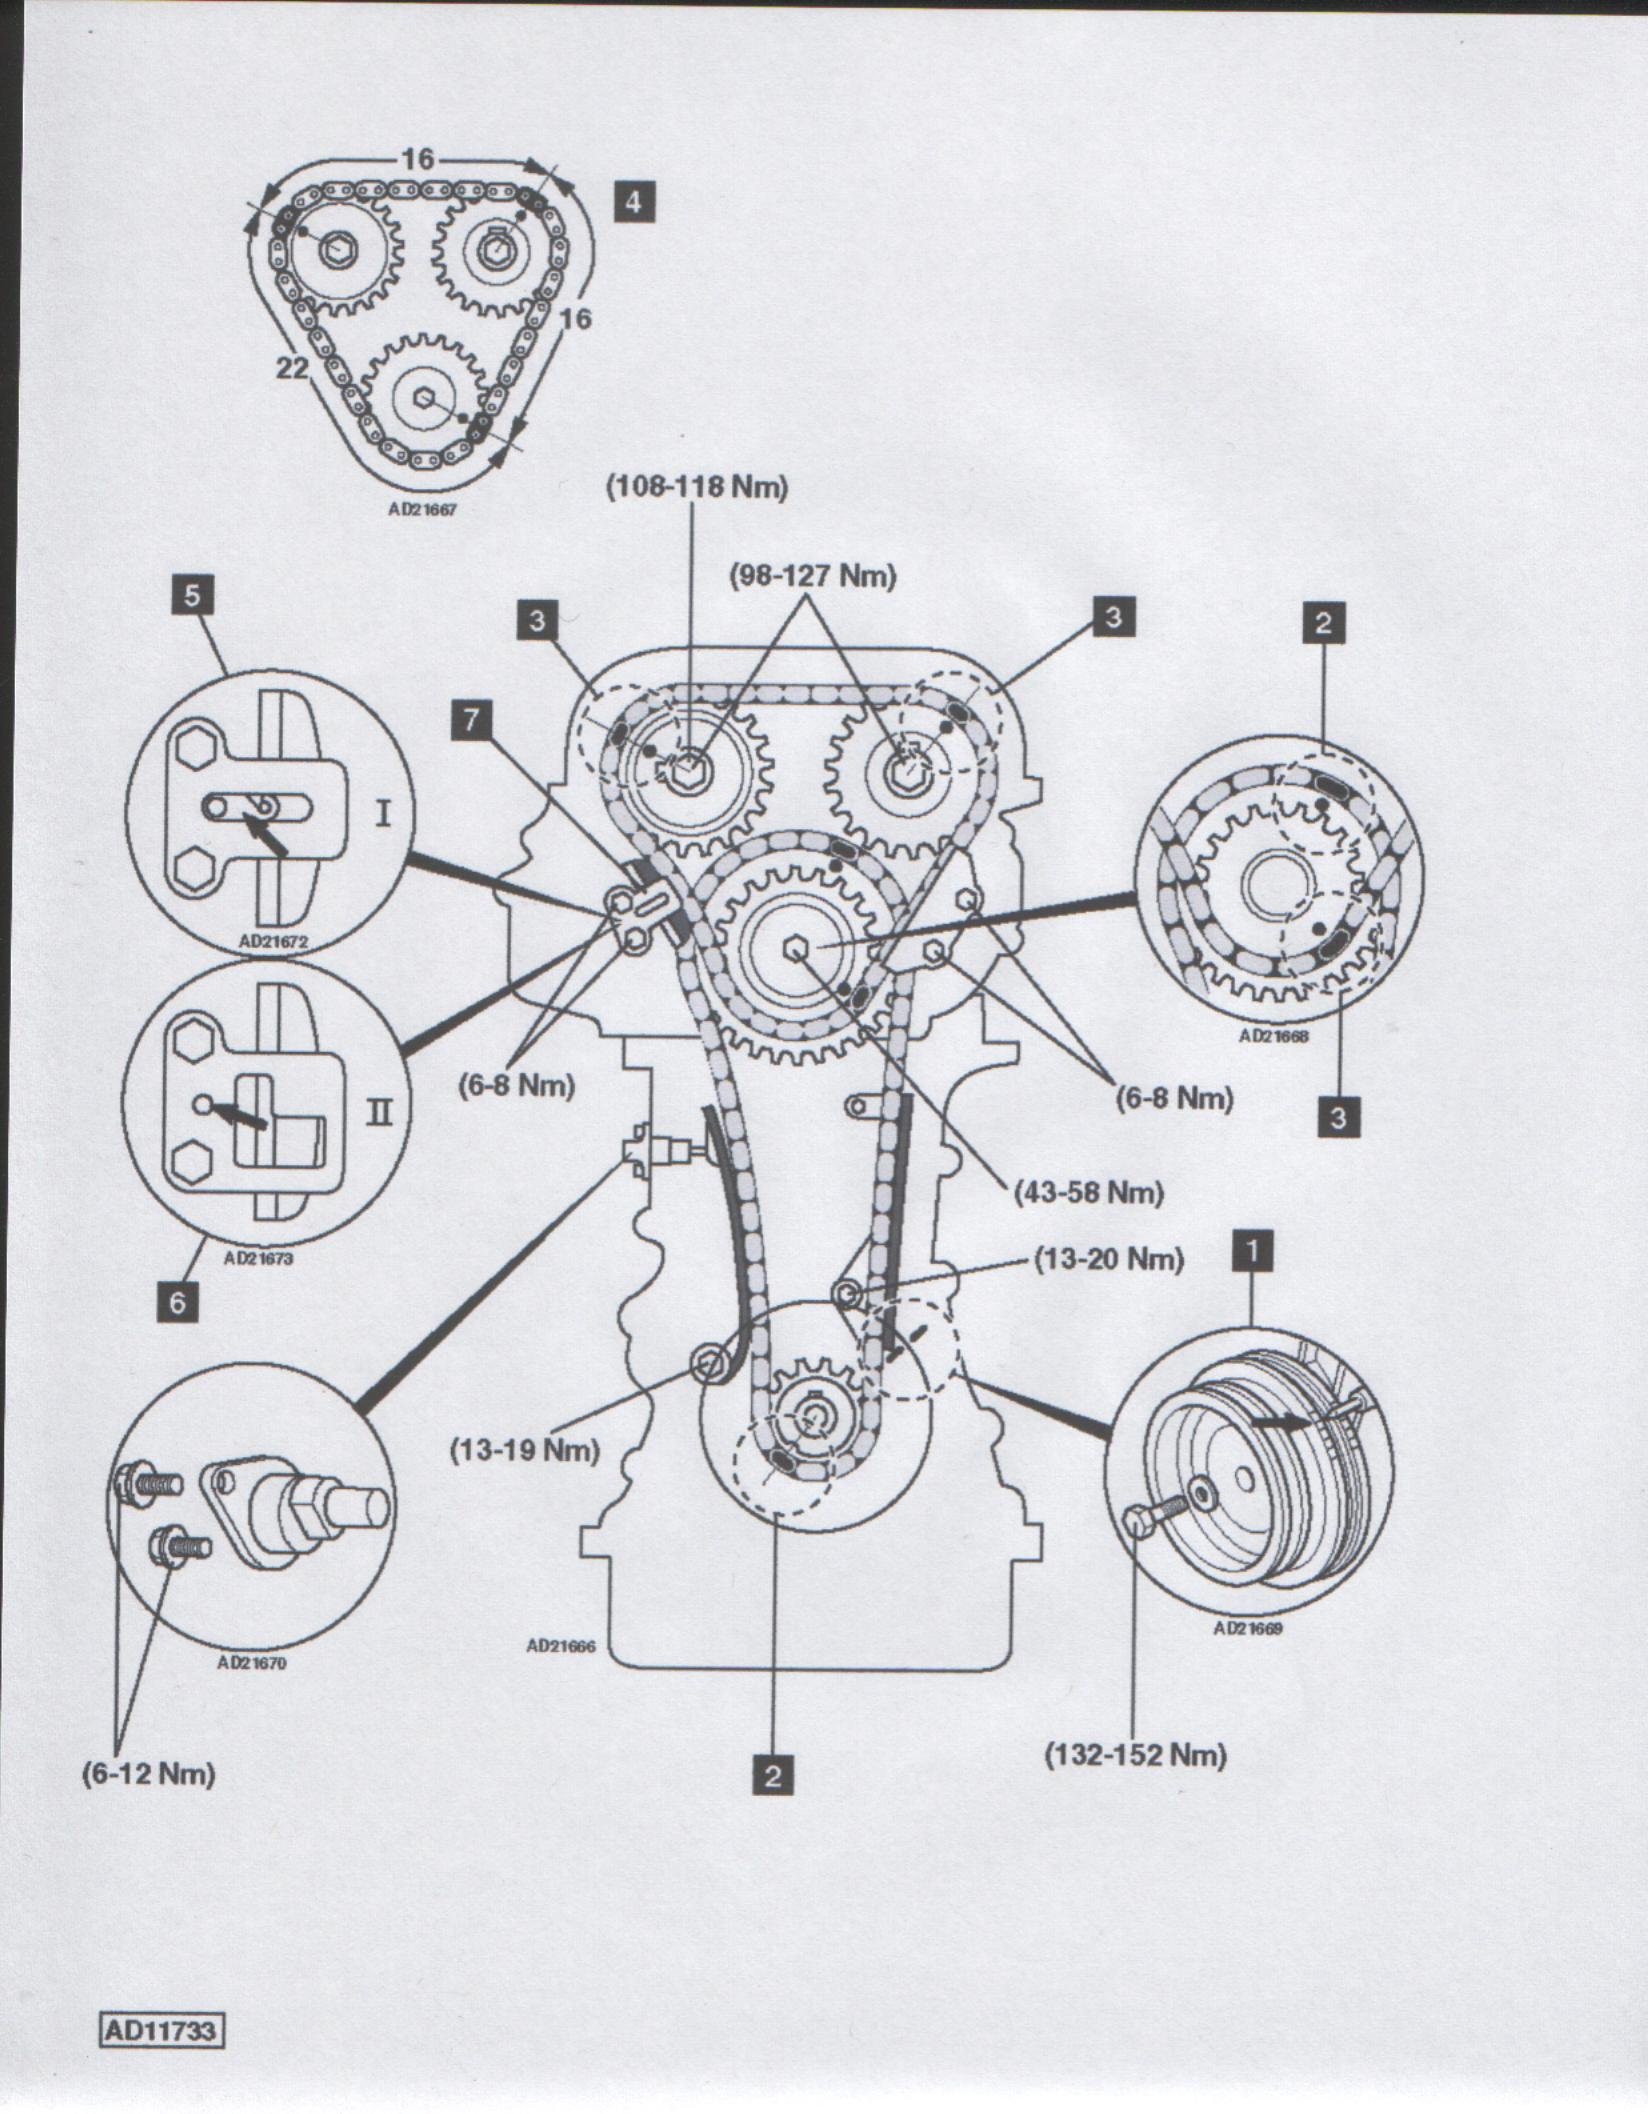 i have a nissan lucinda  primera gd 15 motor it is timing